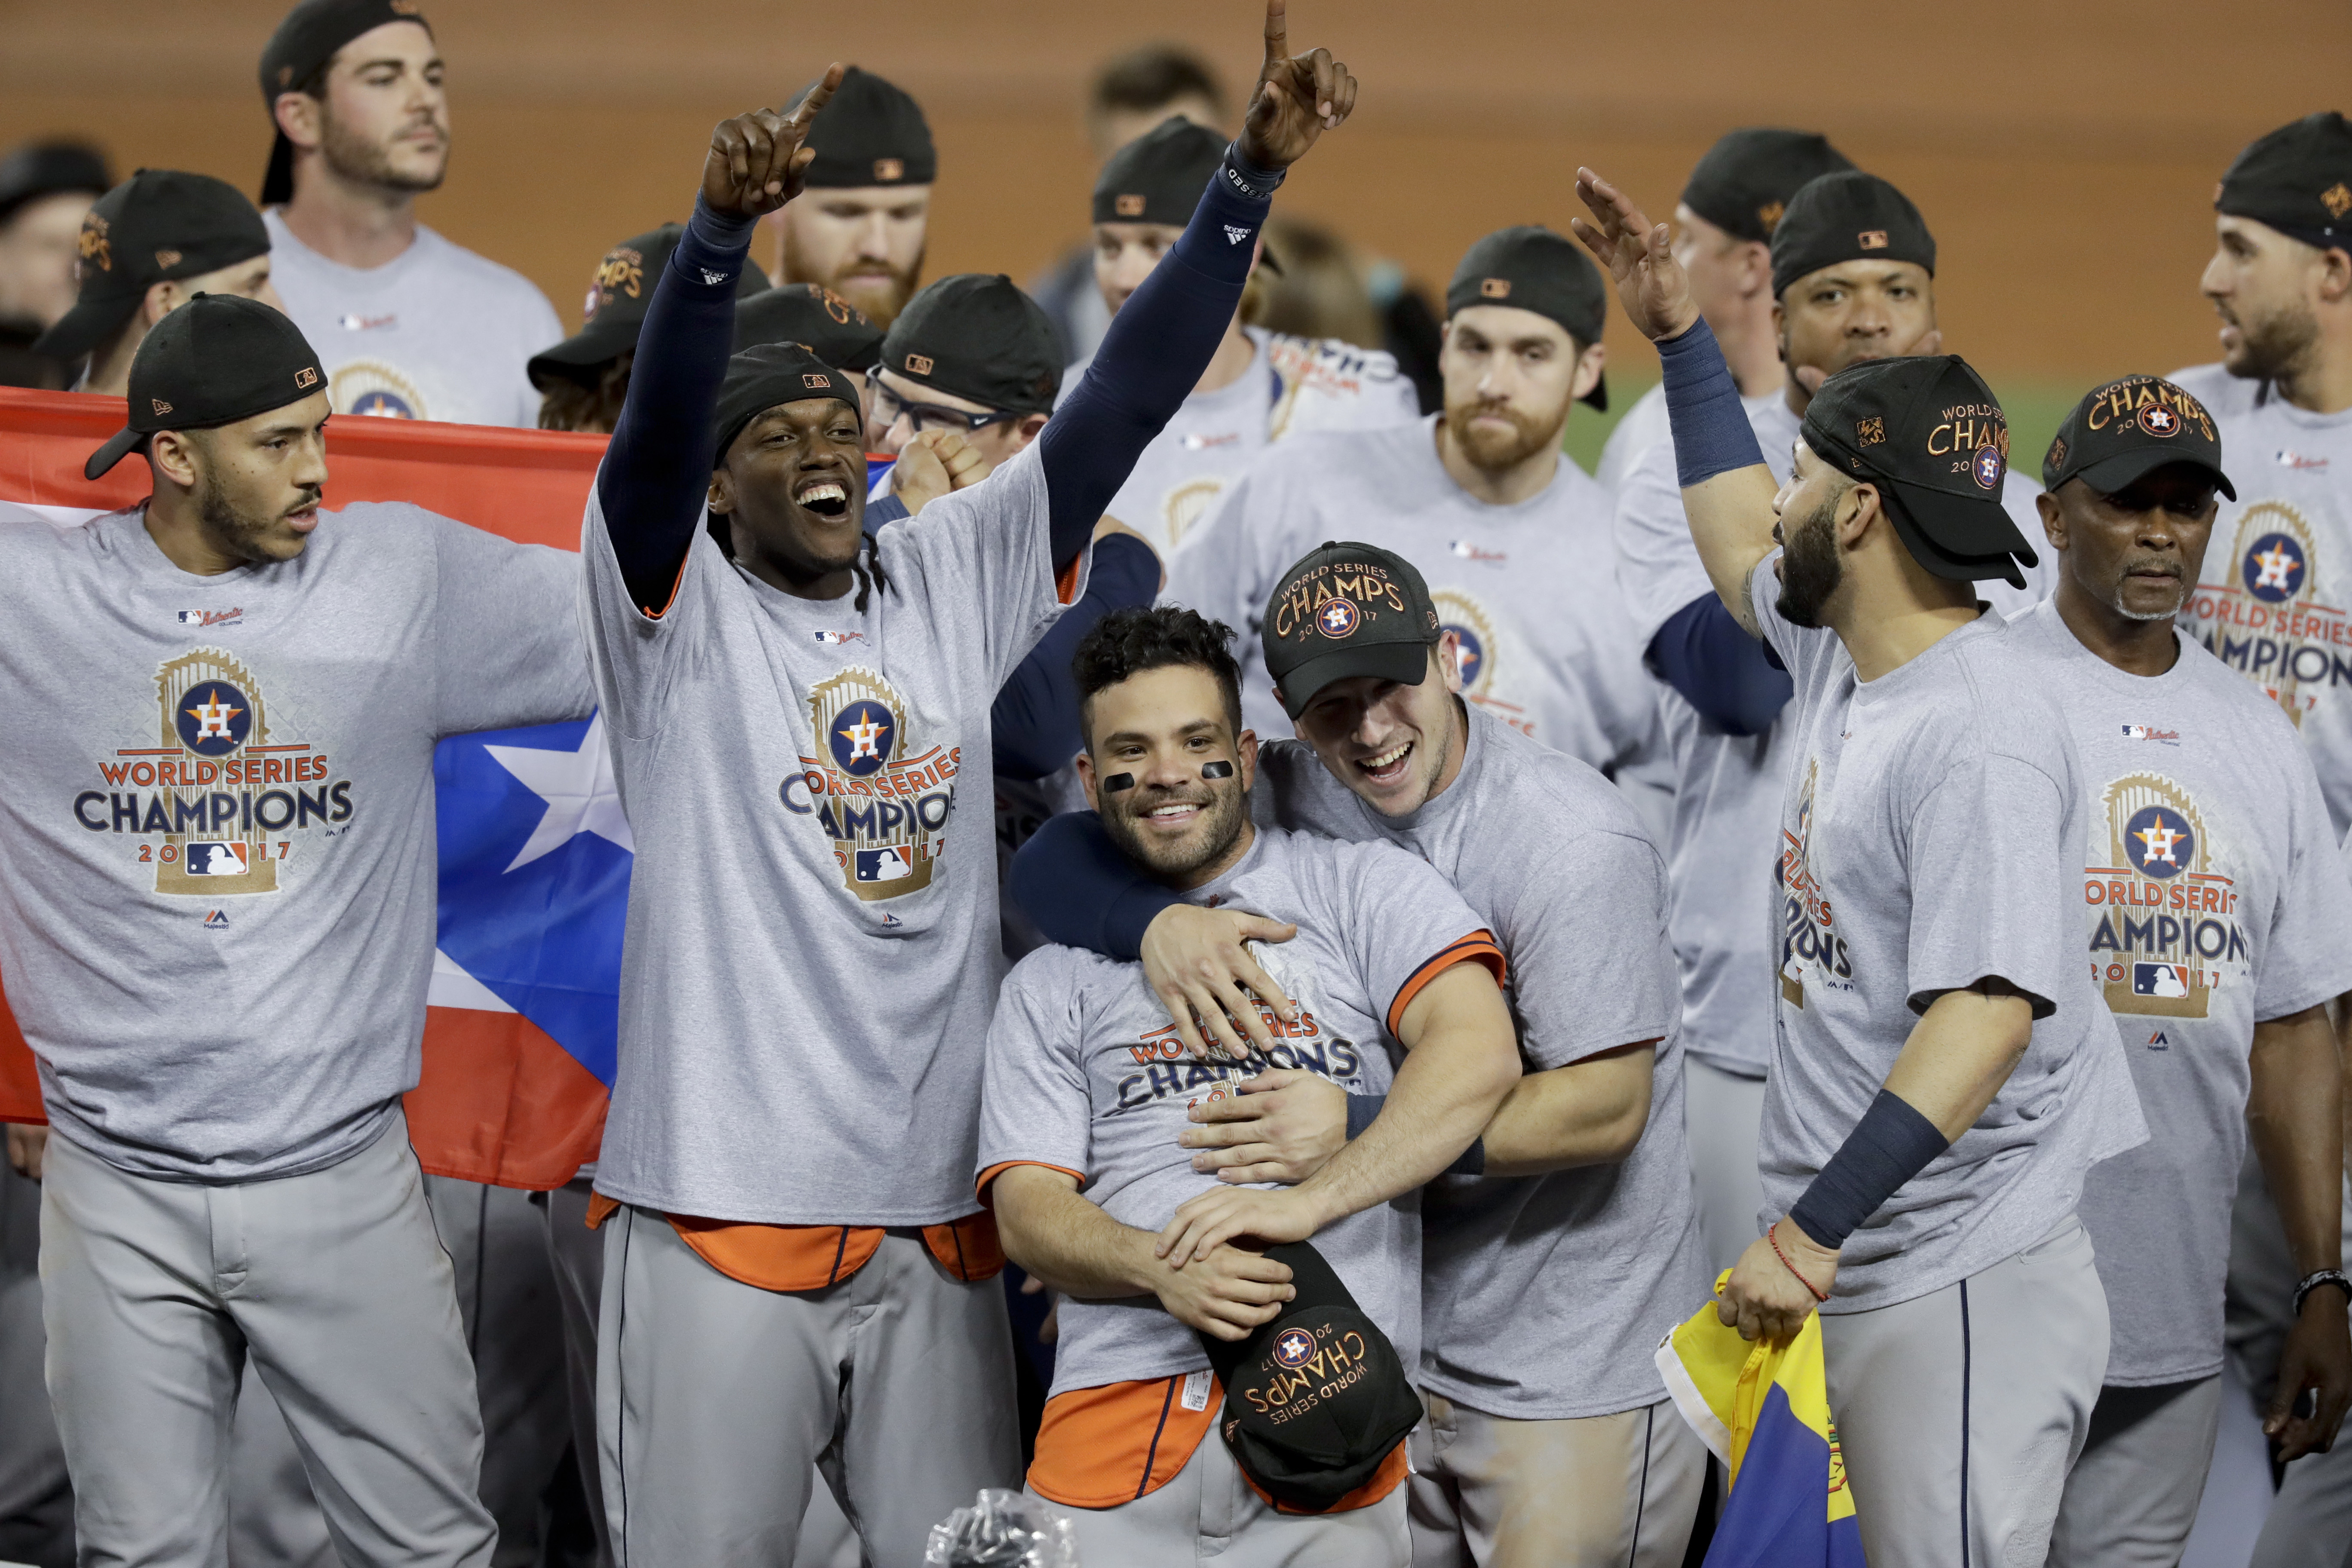 The Houston Astros celebrate after their win against the Los Angeles Dodgers in Game 7 of the World Series Wednesday, Nov. 1, 2017, in Los Angeles. The Astros won 5-1 to win the series 4-3. (AP Photo/Alex Gallardo)